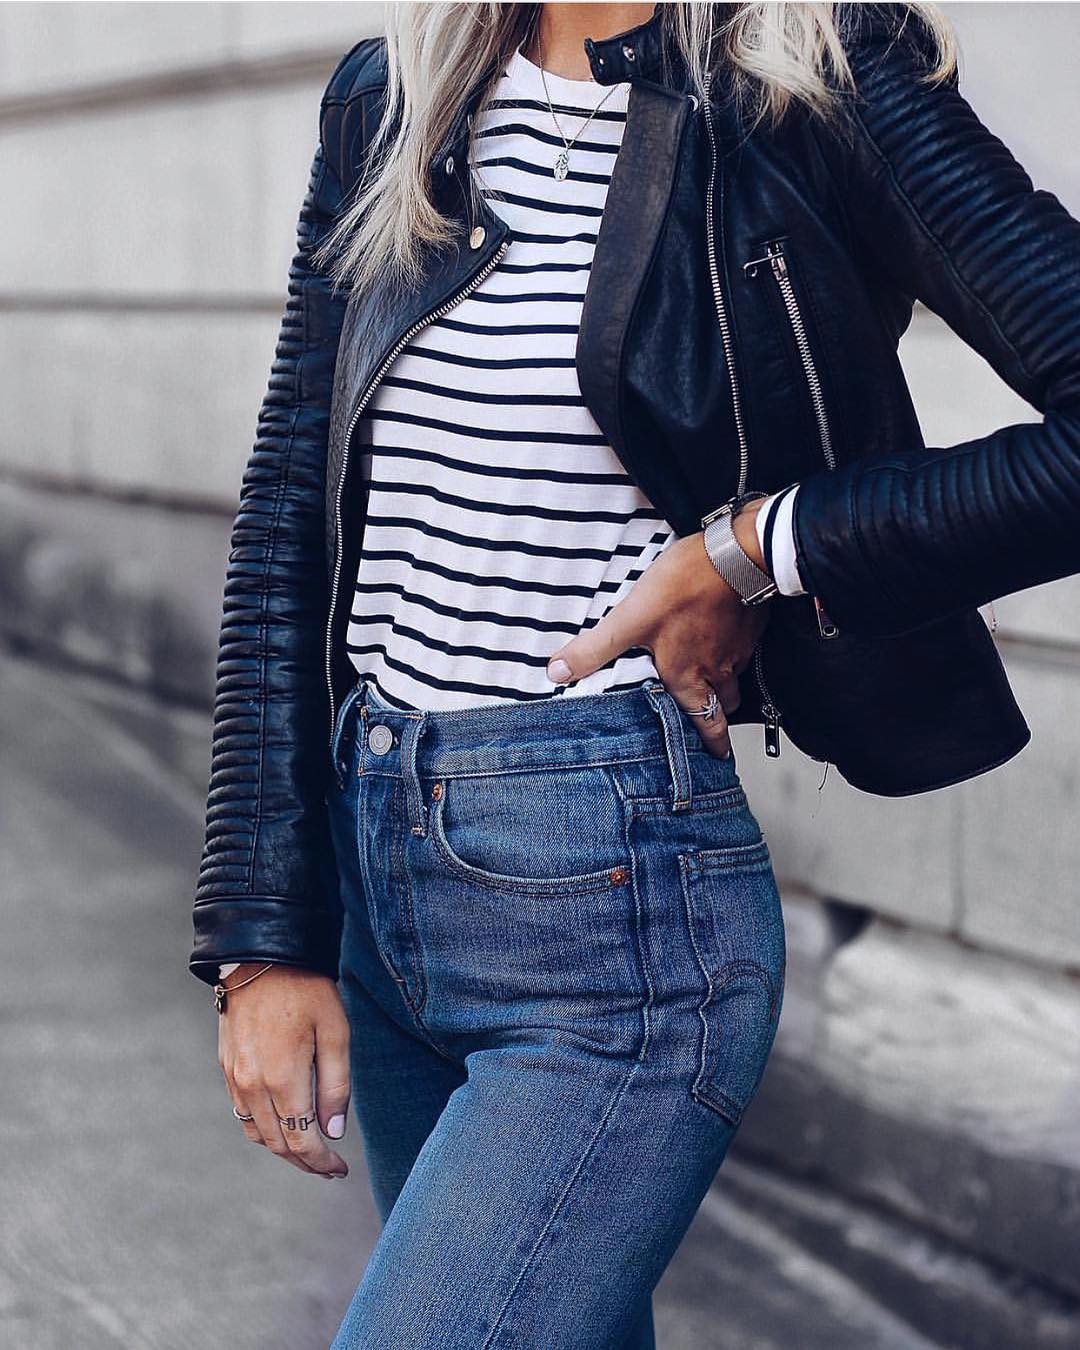 Black Leather Jacket, Striped Top And High Rise Jeans For Fall 2020